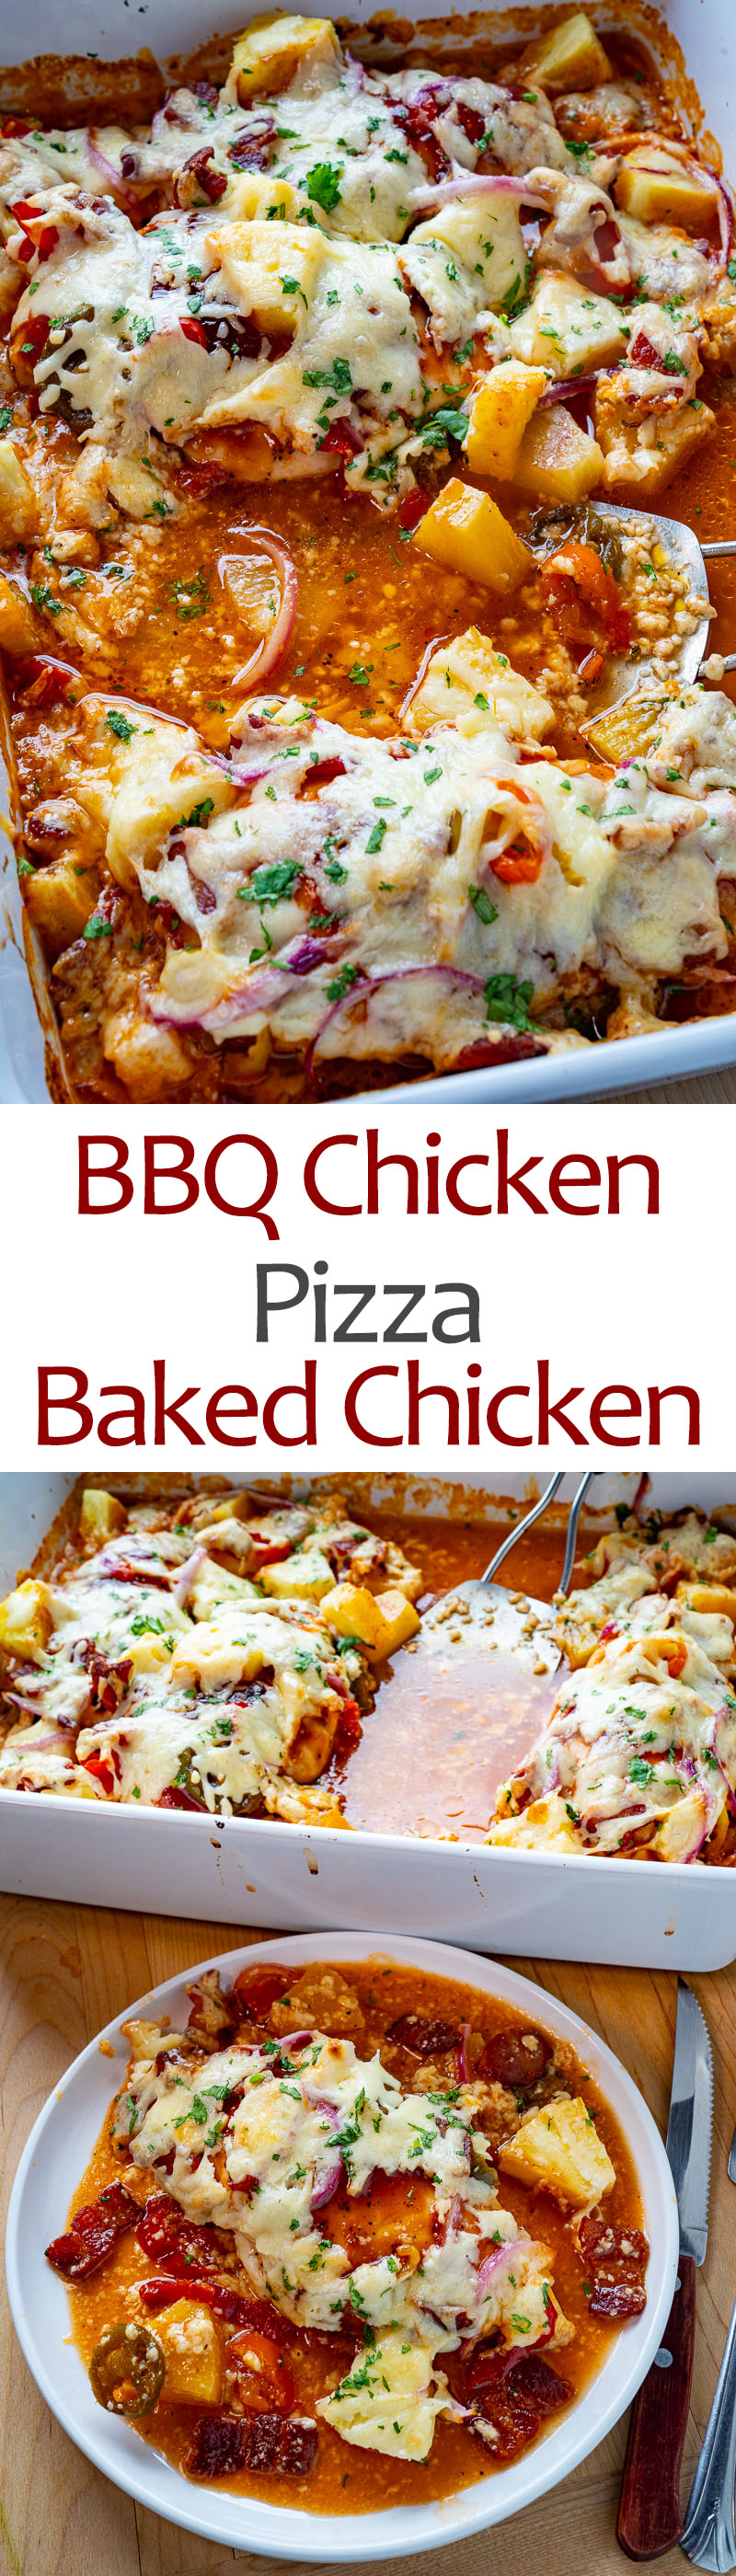 BBQ Chicken Pizza Baked Chicken